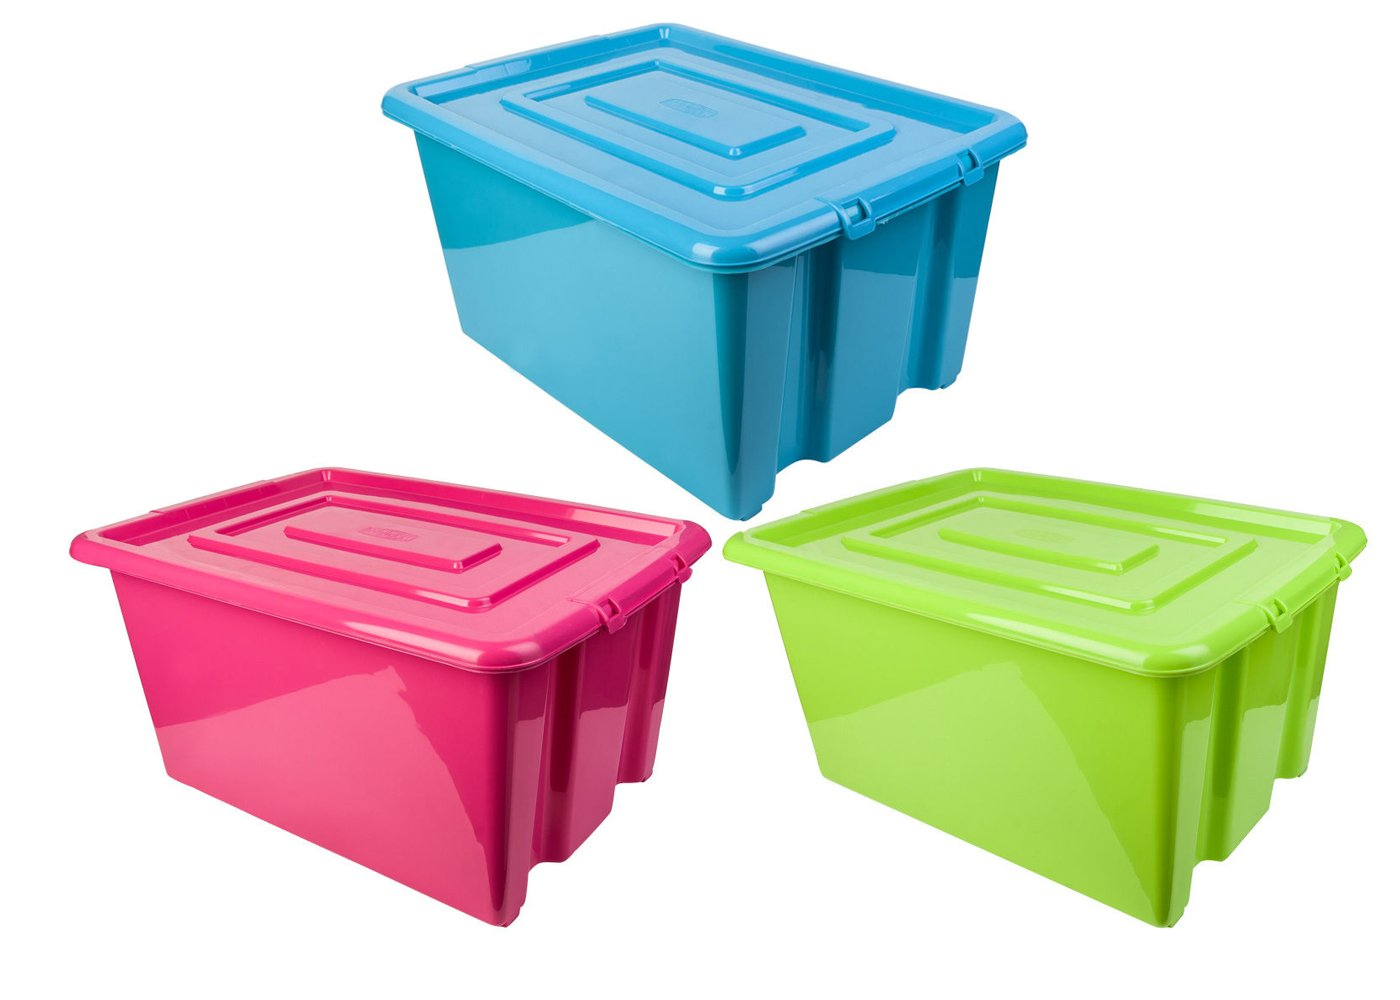 Colourful Whitefurze Plastic Stackable Container Medium Storage Box With Lid 32L (Bright Green) Amazon.co.uk Kitchen u0026 Home  sc 1 st  Amazon UK : coloured storage boxes  - Aquiesqueretaro.Com